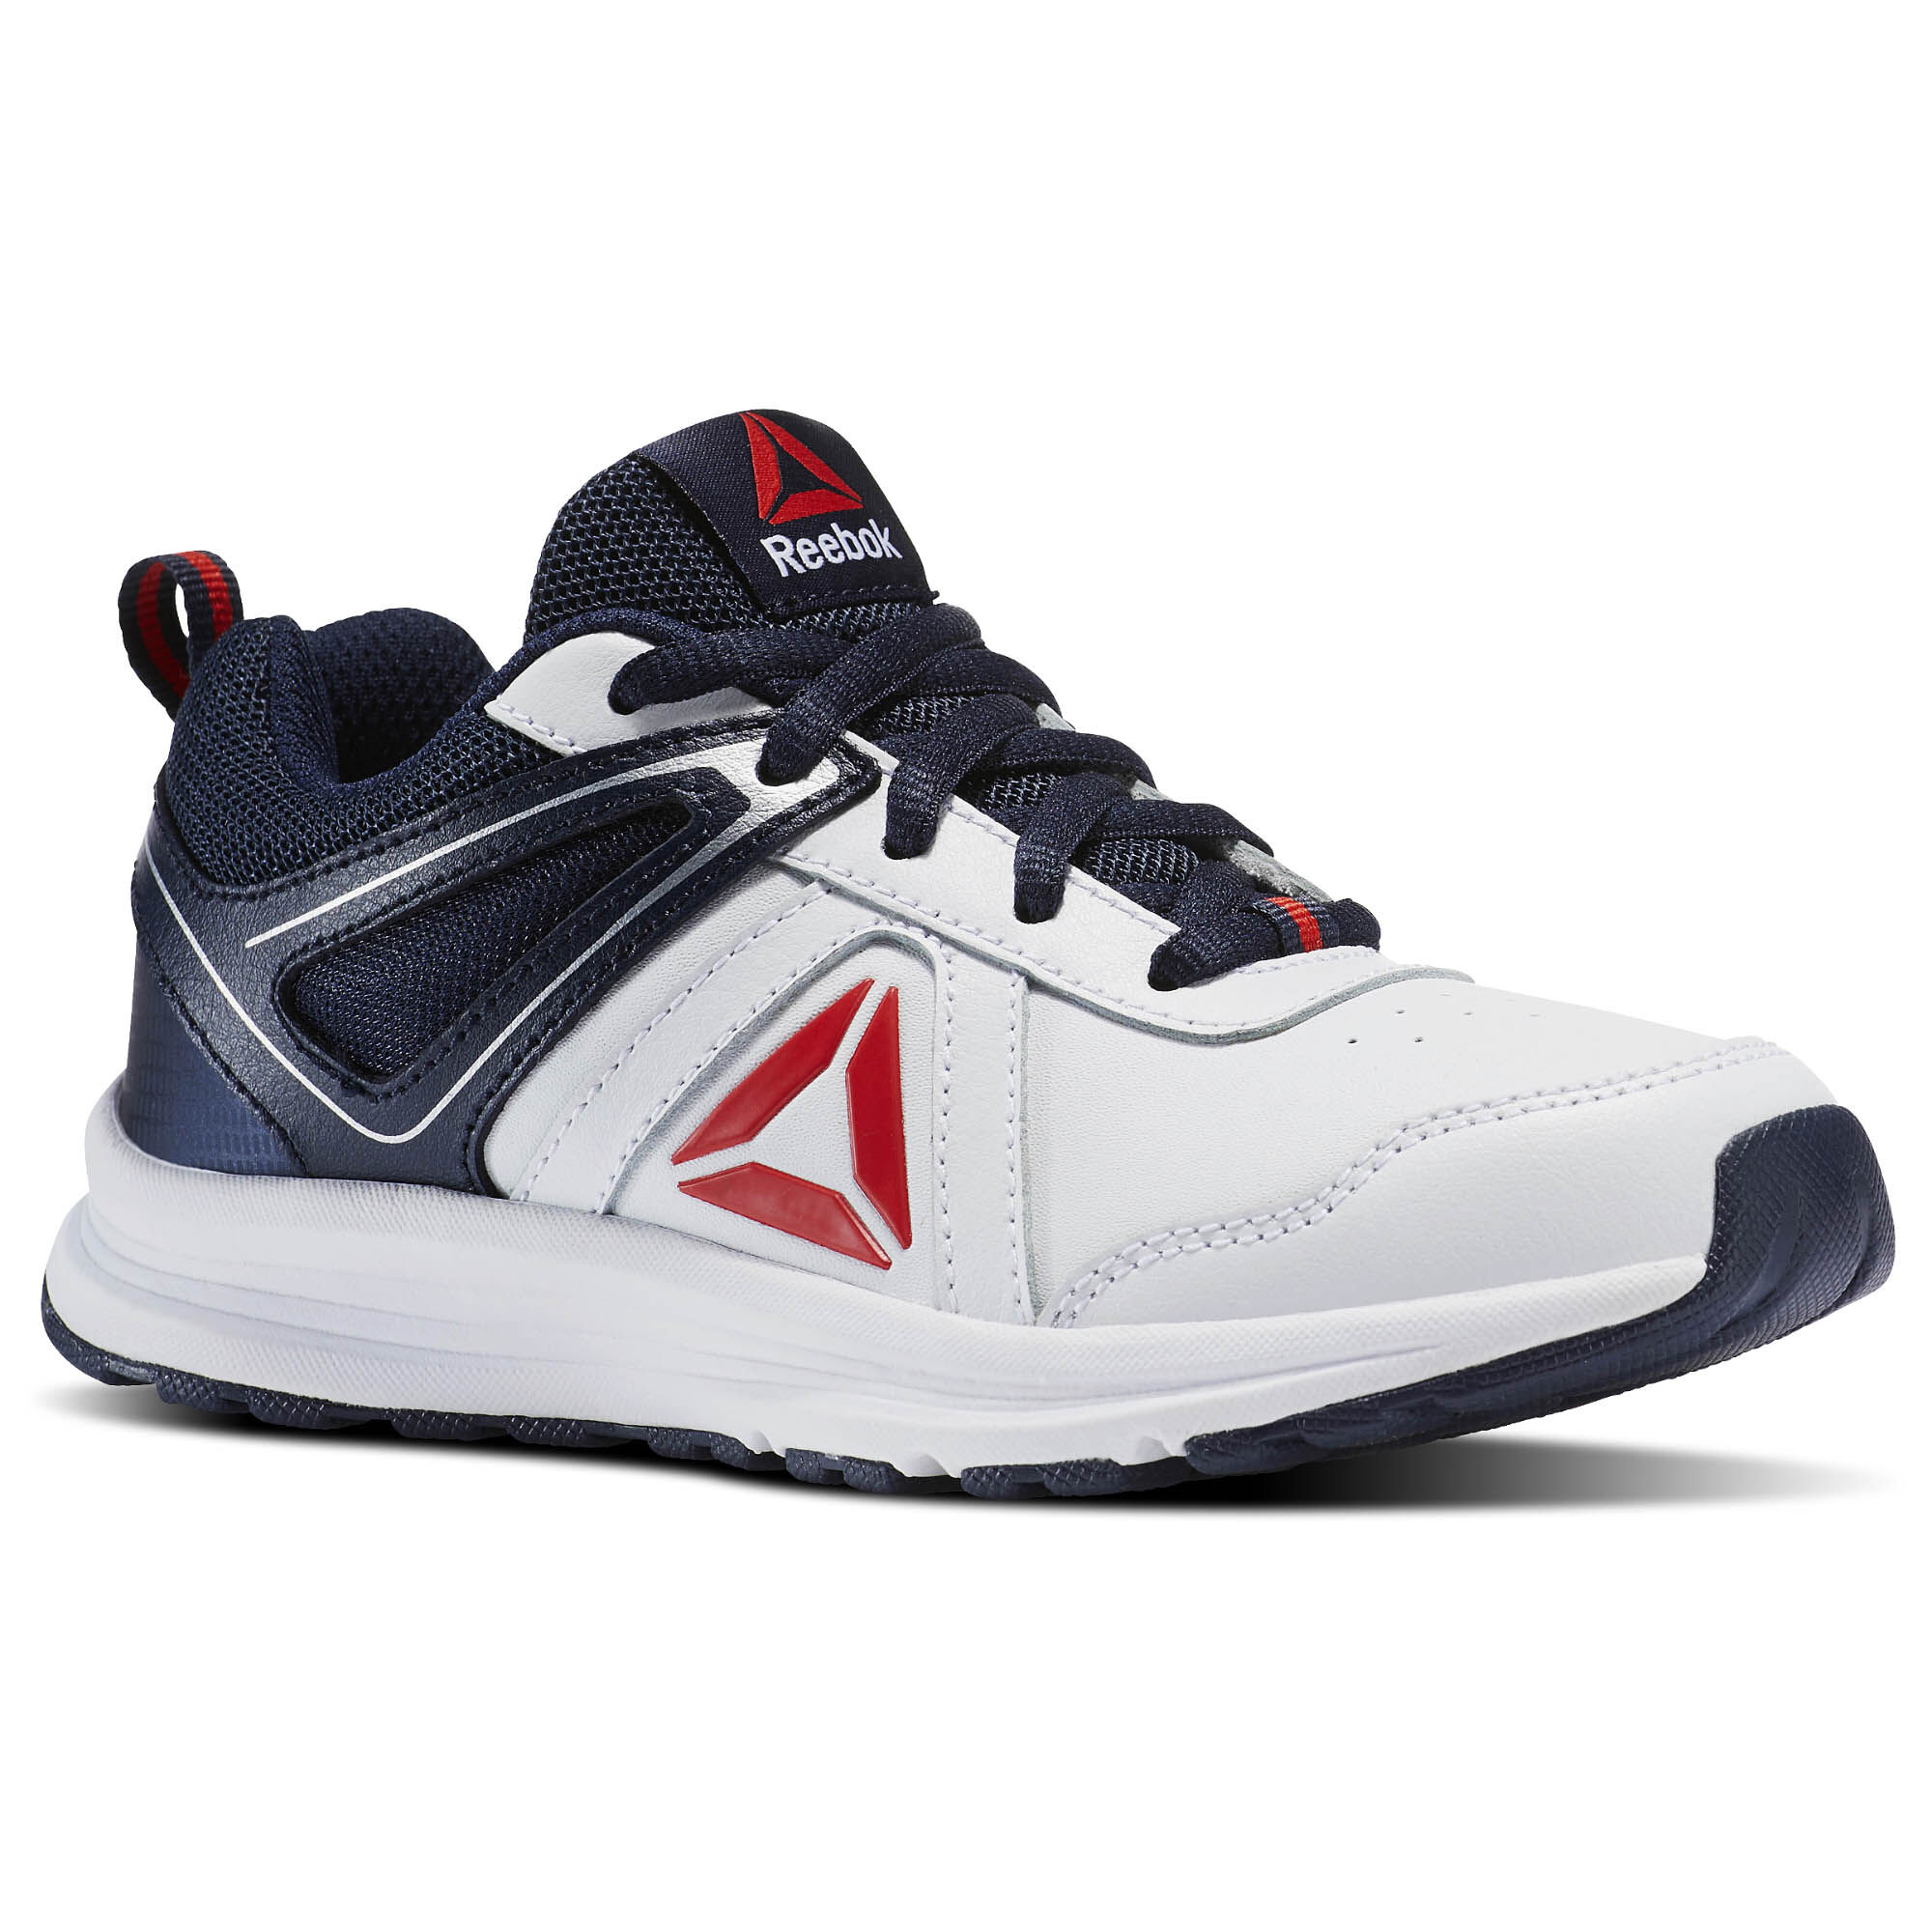 Reebok - Almotio 3.0 - Nursery School White/Collegiate Navy/Primal Red  BS7556